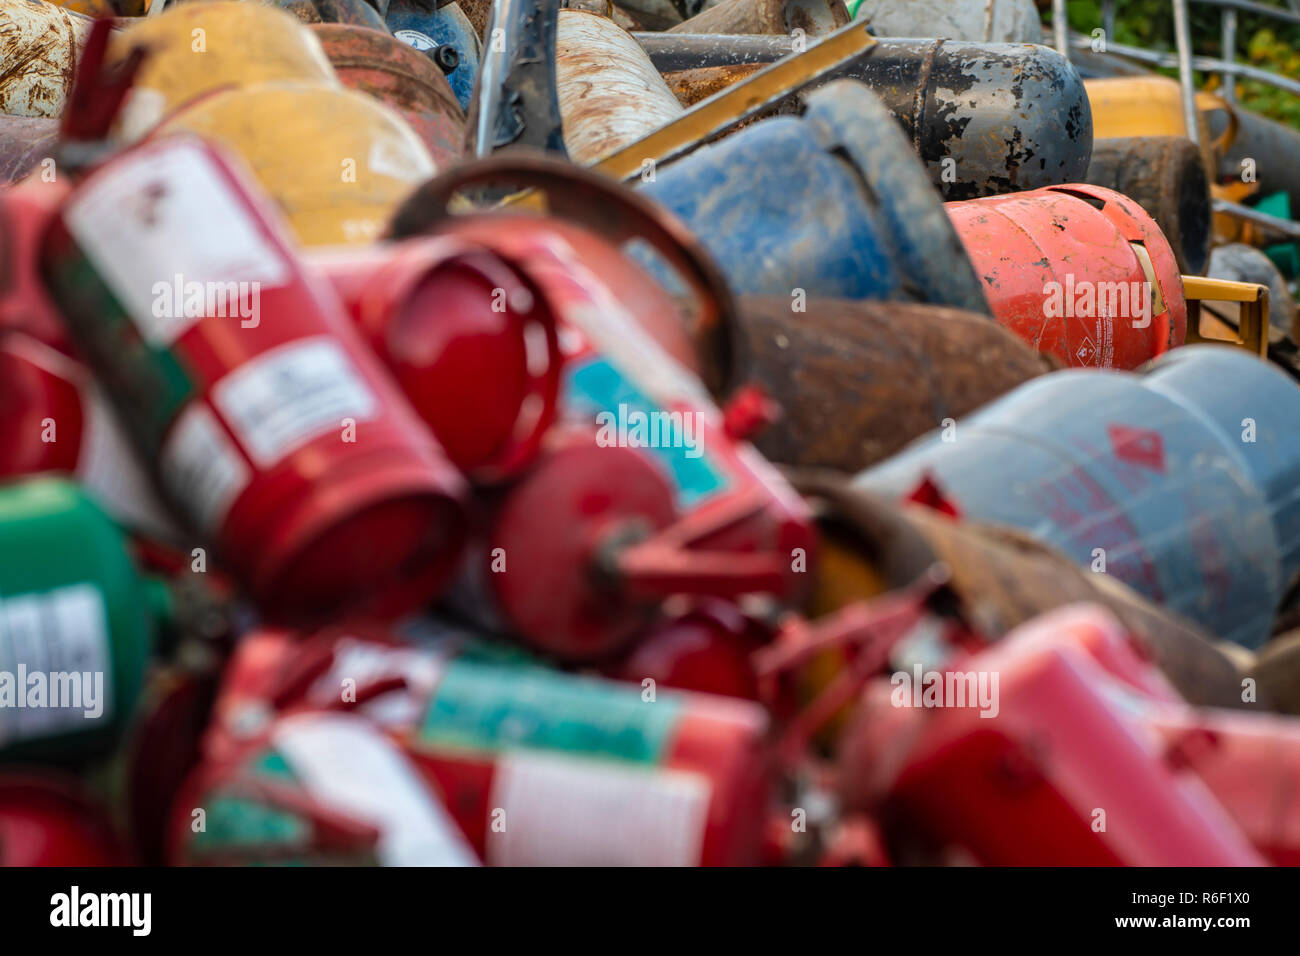 Old extinguisher and gas bottles on scrap yard - Stock Image